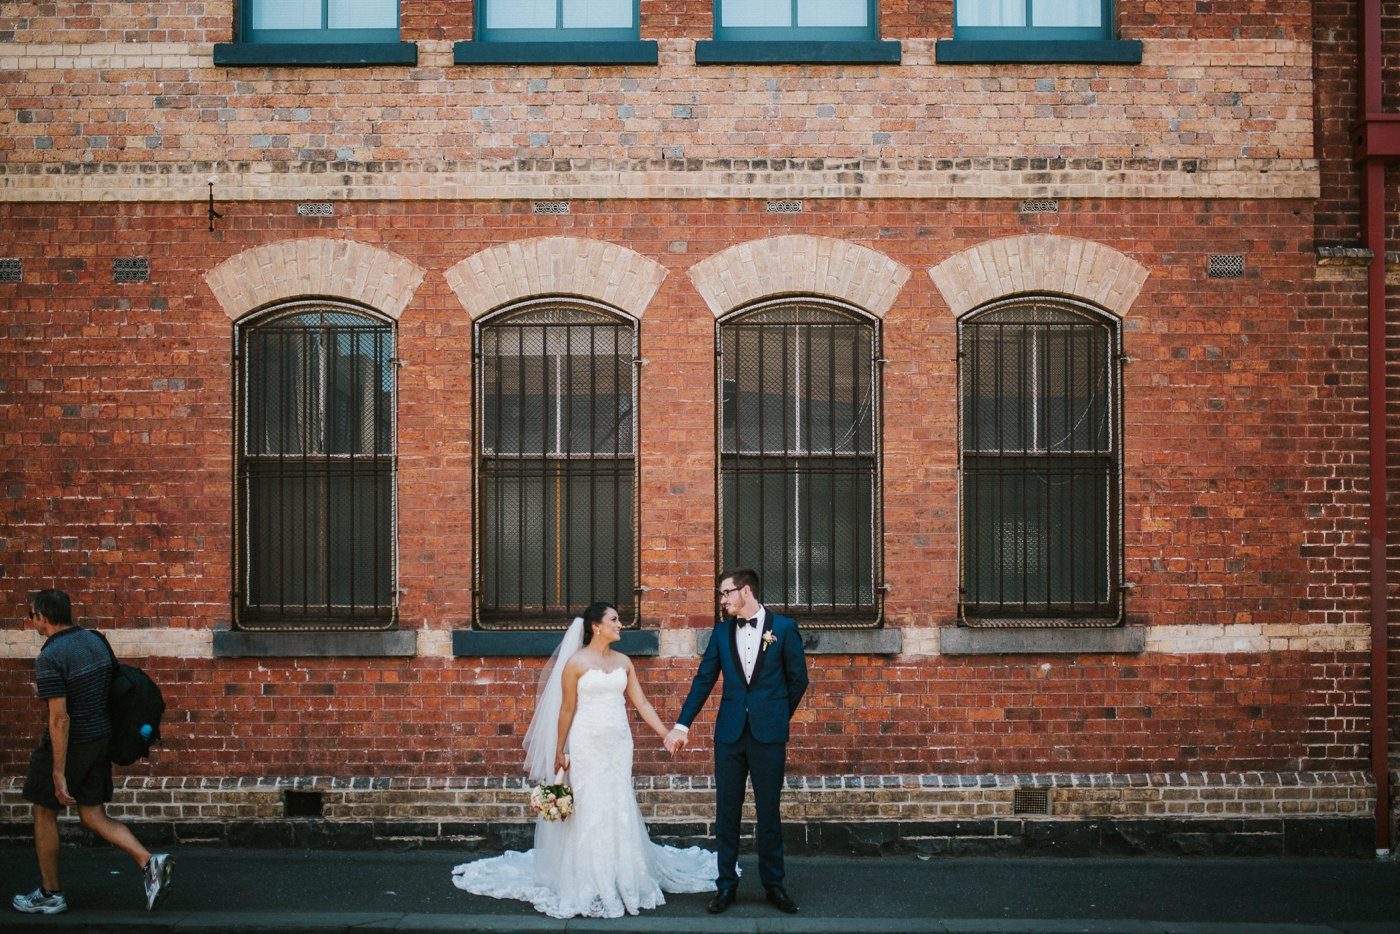 Sharon&Rob_Melbourne-Wedding-Photography_Elegant-Relaxed-Urban_Blog-13